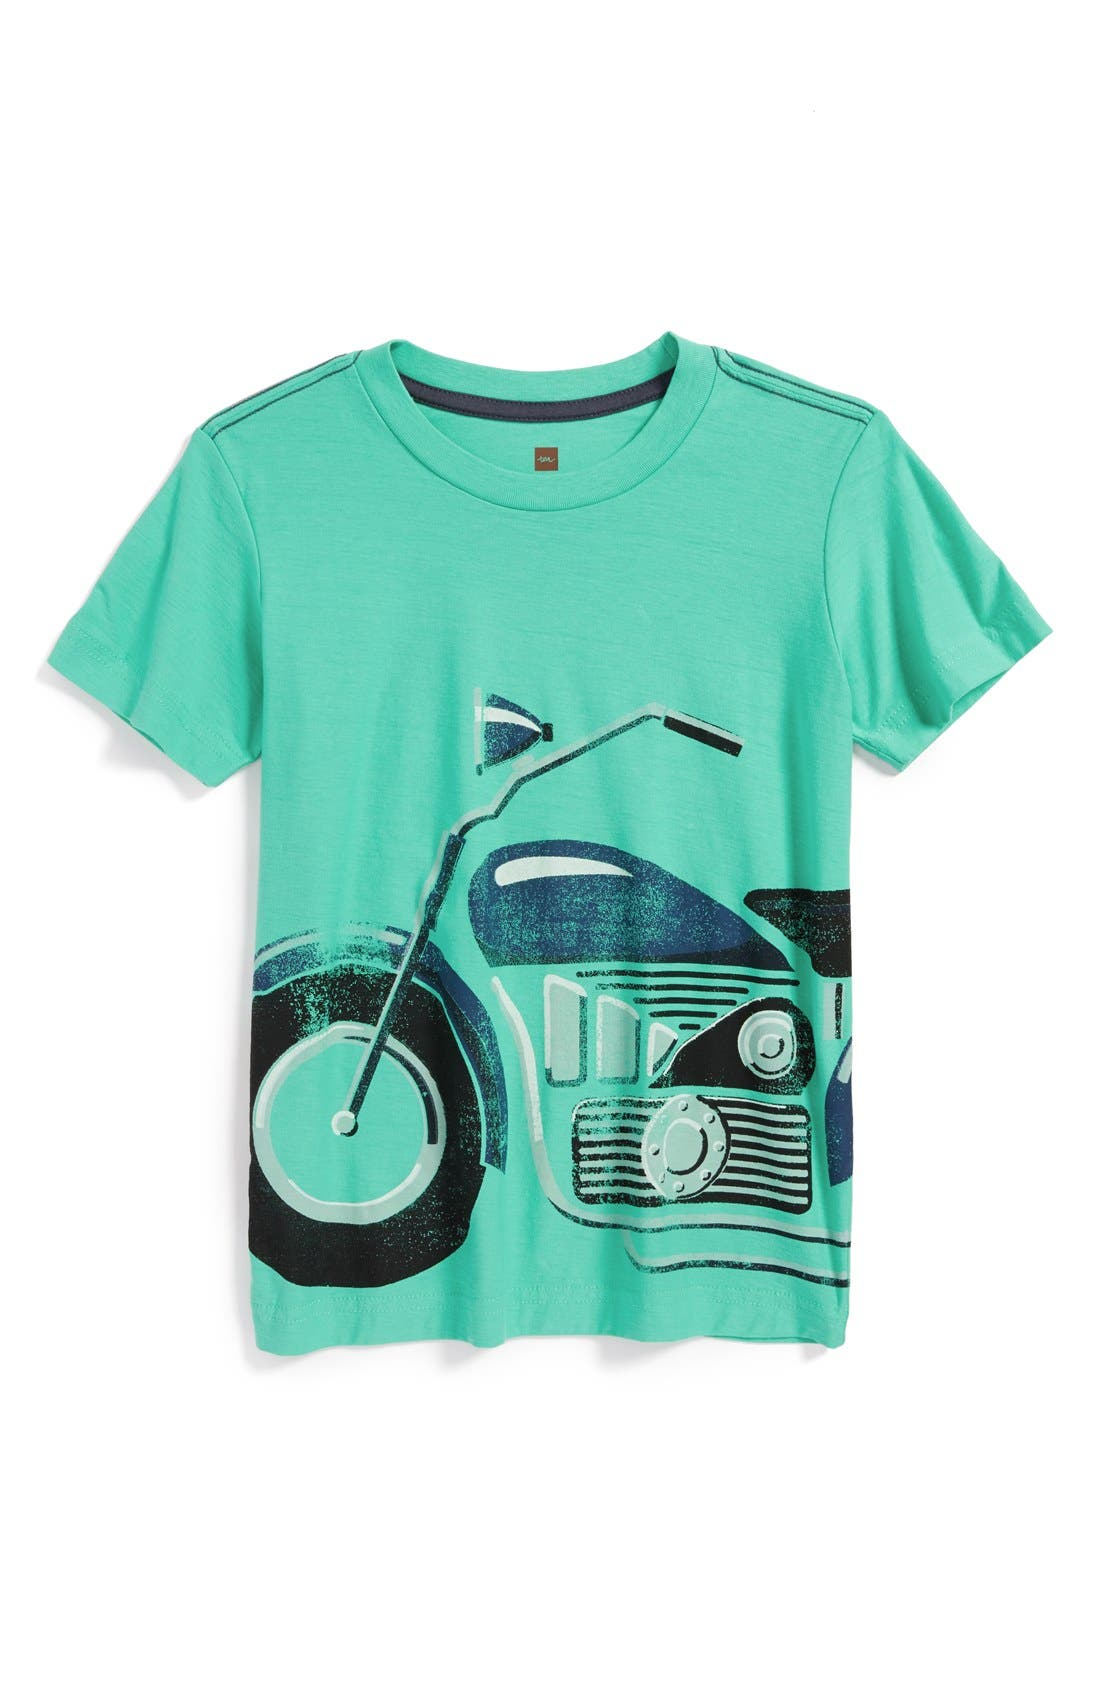 Main Image - Tea Collection 'Motorrad' Graphic T-Shirt (Toddler Boys & Little Boys)